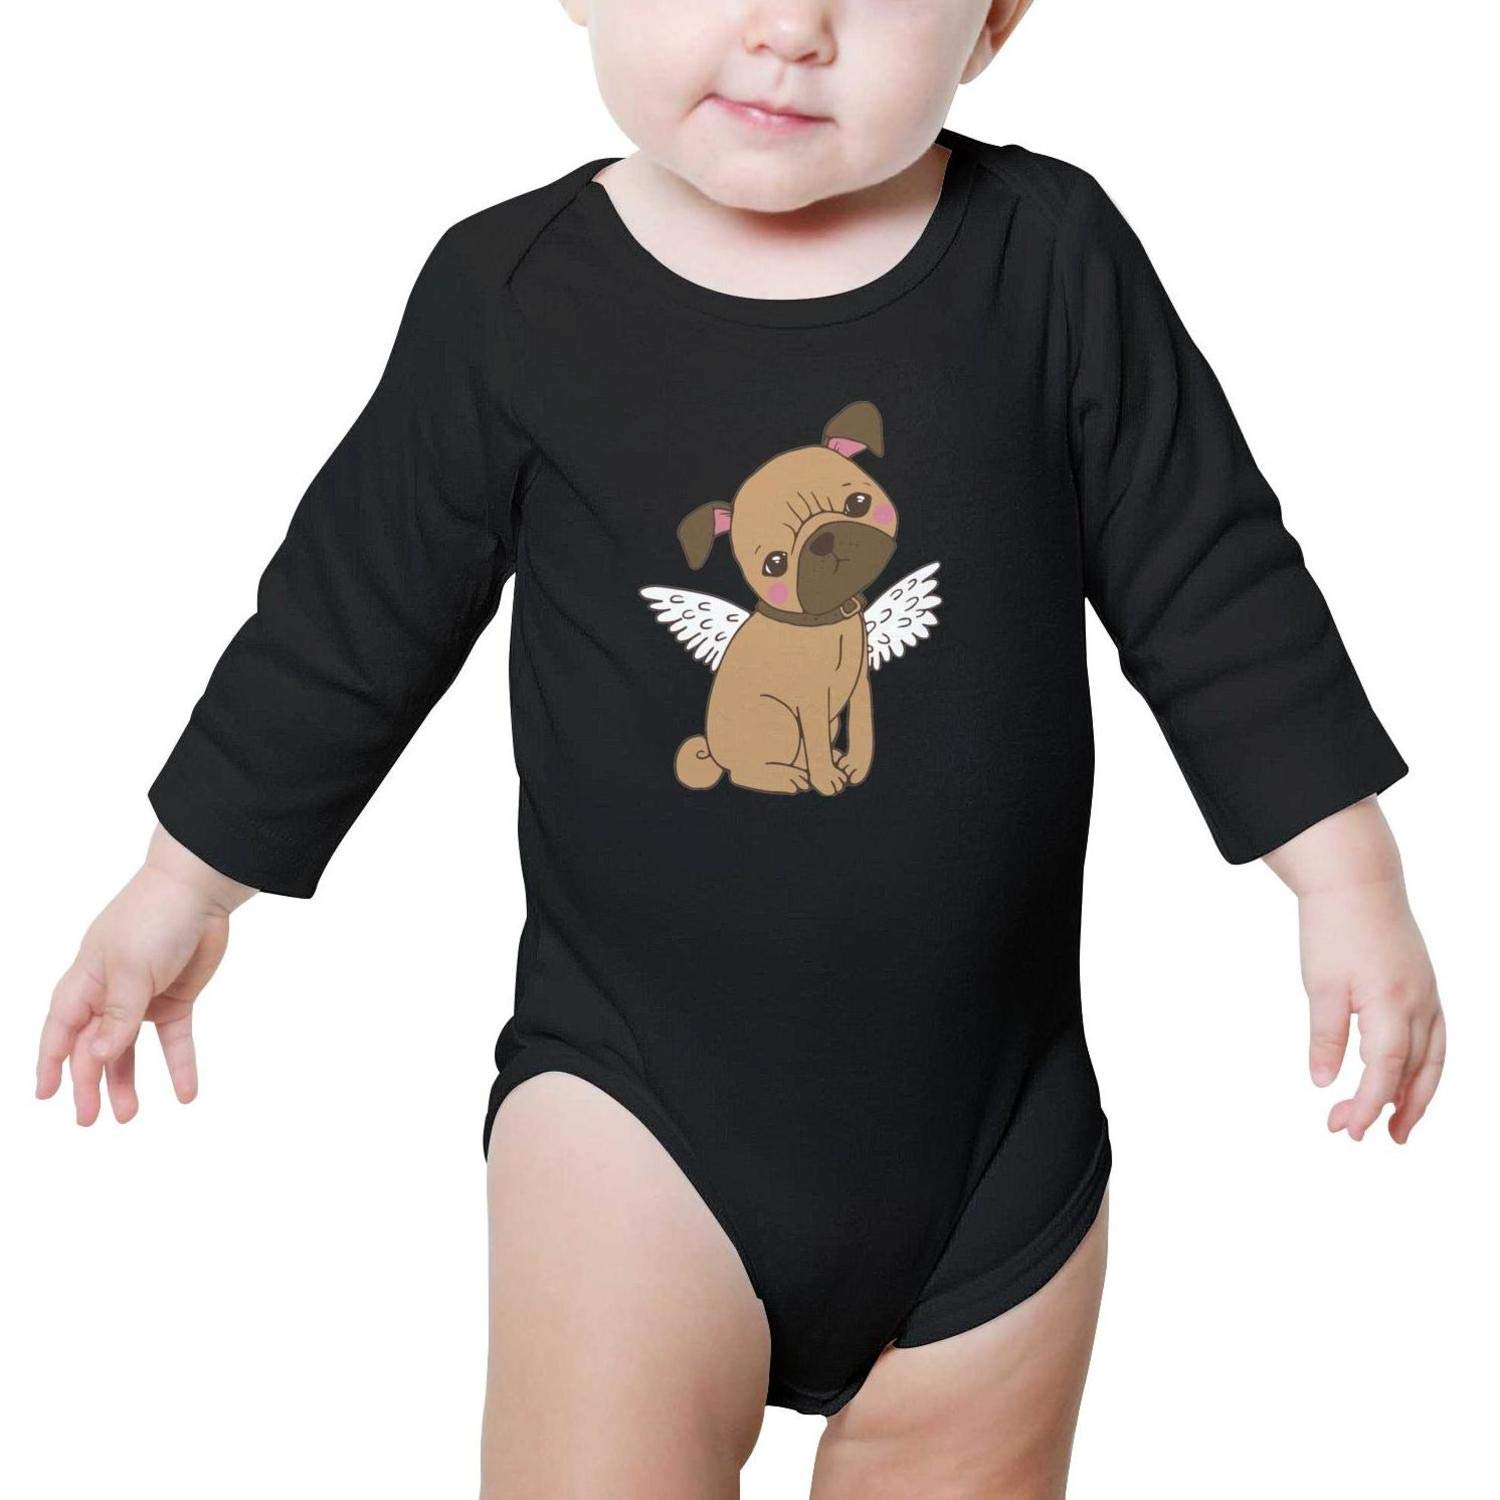 SHUOCDAH Sad Pug Flying Baby Boys Cute Bodysuit Onesies